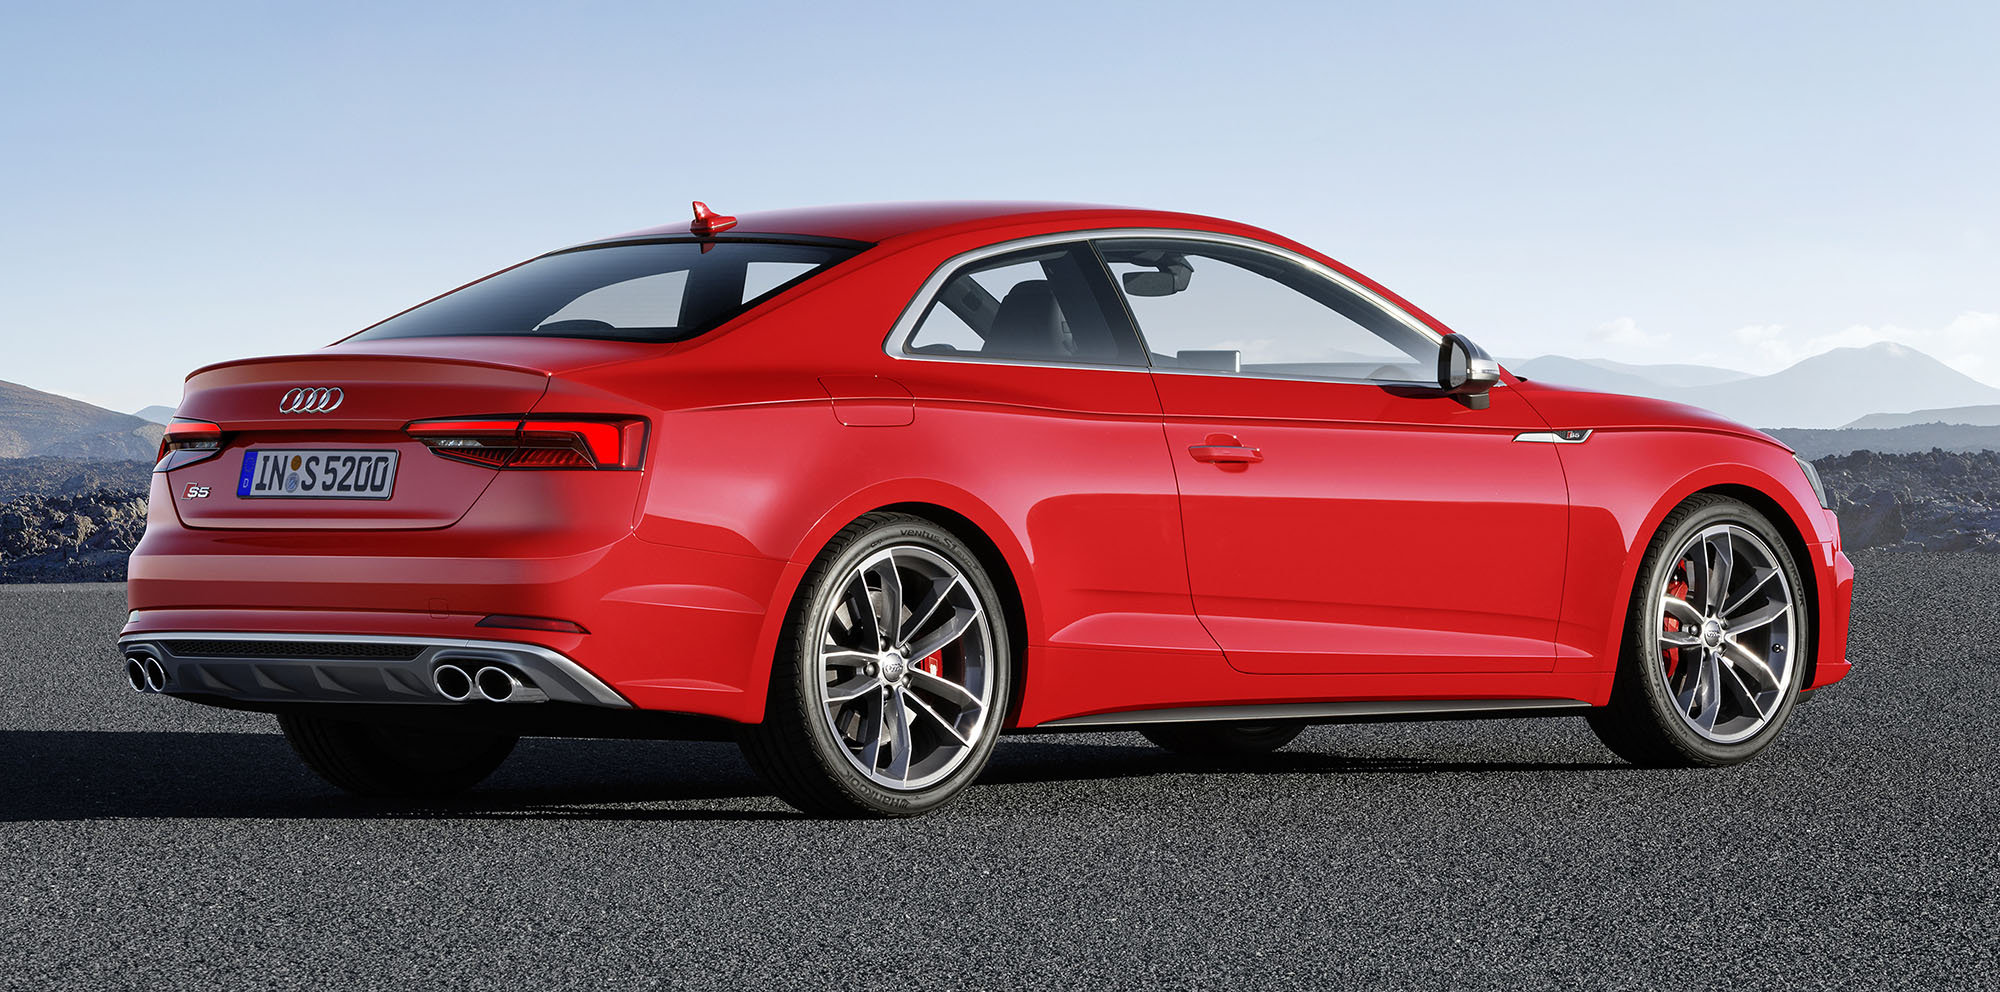 2017 audi a5 coupe s5 coupe revealed australian launch due first half next year photos 1 of 15. Black Bedroom Furniture Sets. Home Design Ideas